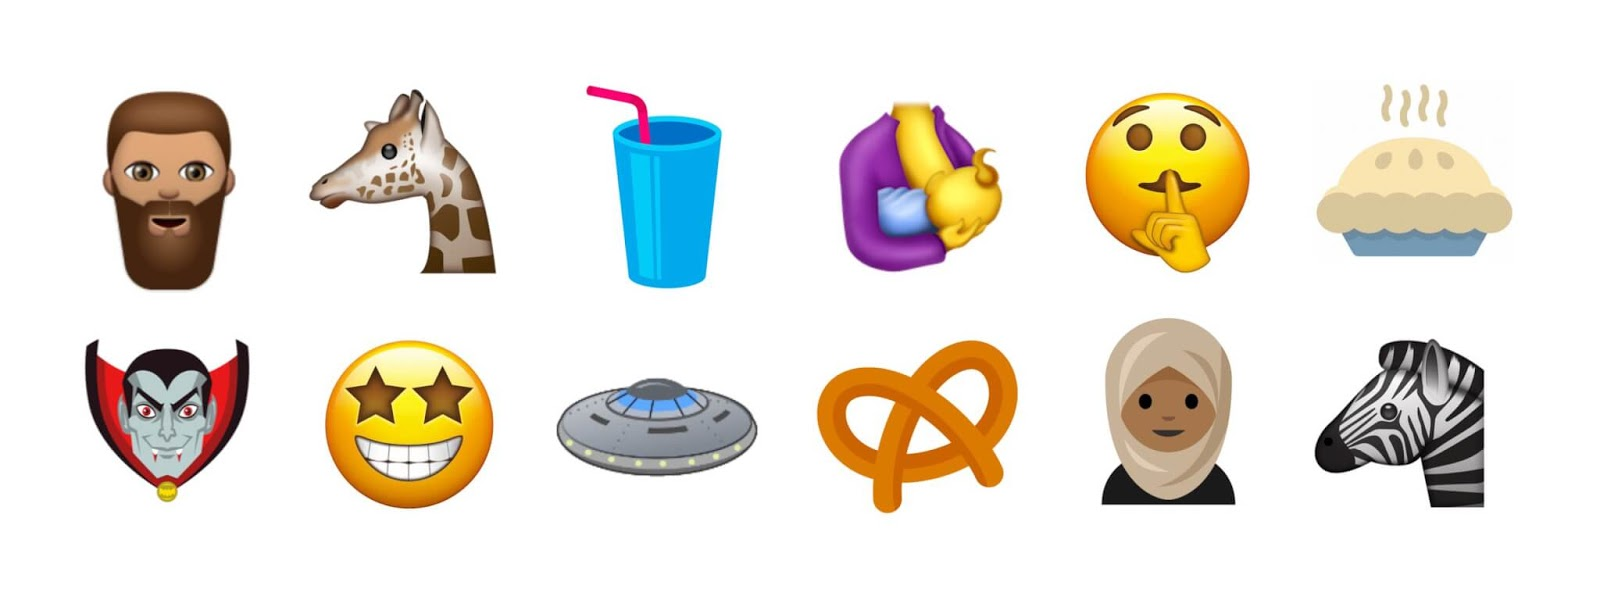 Here Are The 51 New Emoji That Coming With Unicode 10 This June